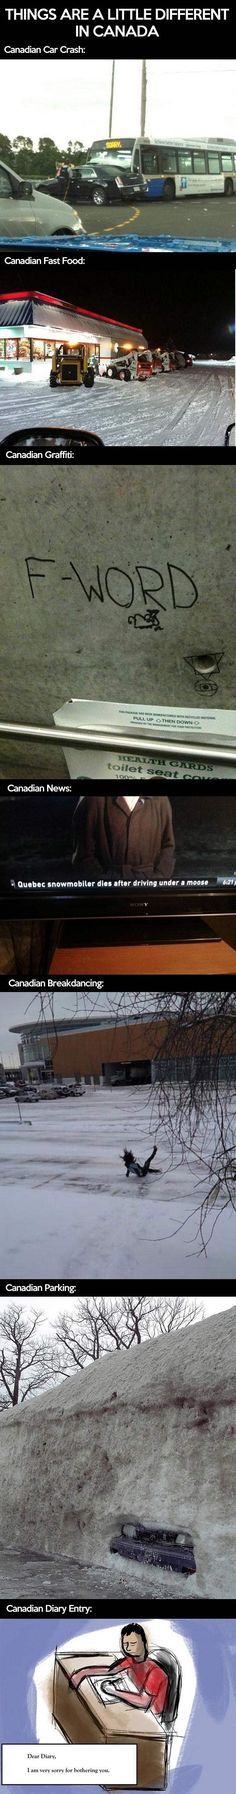 Oh just Canada.. // funny pictures - funny photos - funny images - funny pics - funny quotes - #lol #humor #funnypictures